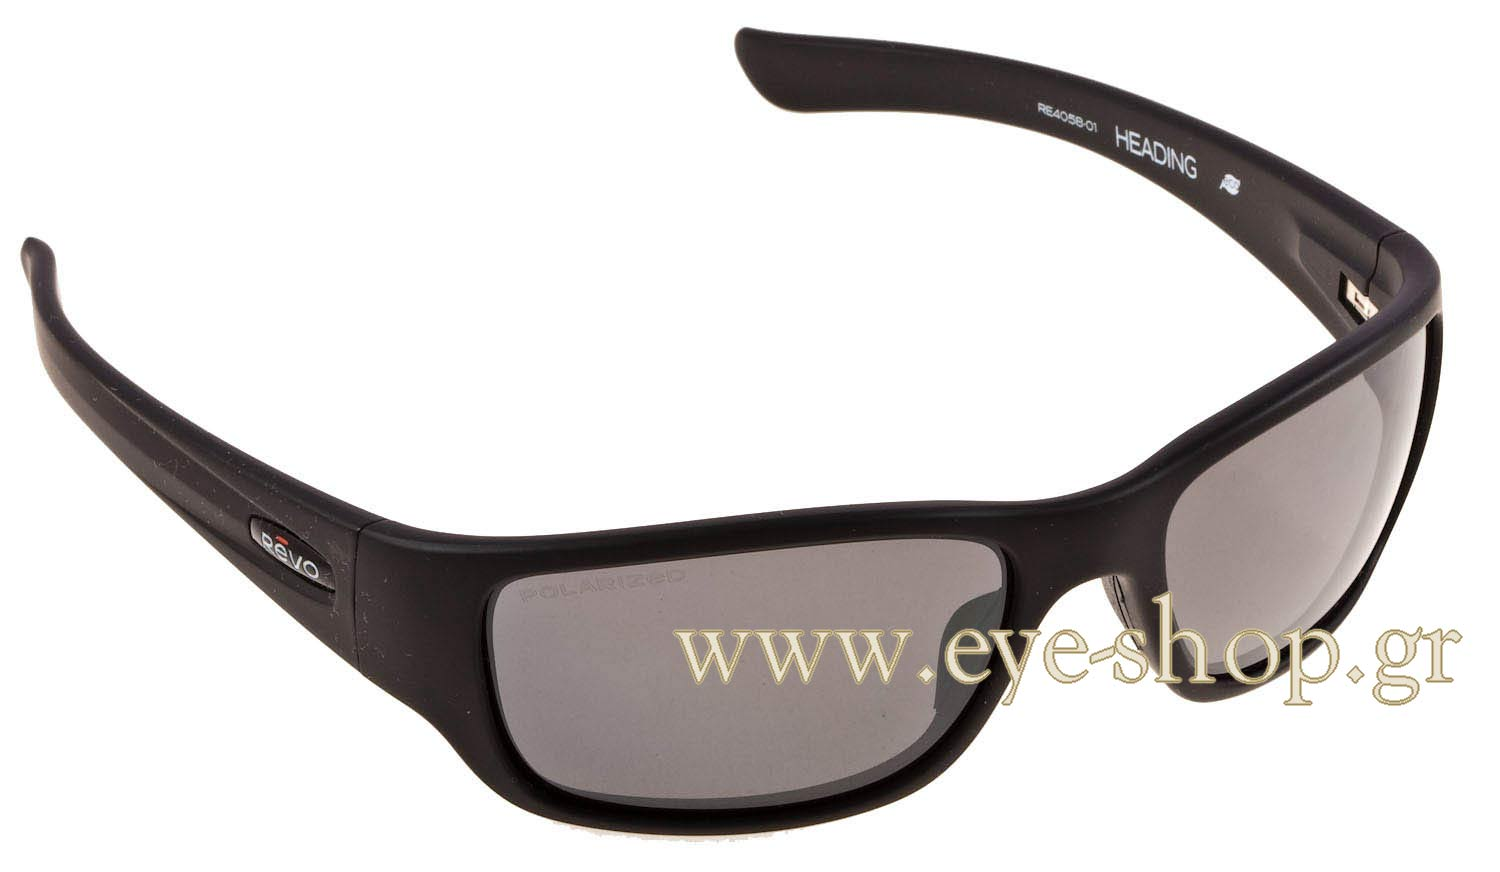 df06f0f30dd SUNGLASSES Revo Heading 4058 405801 Polarized